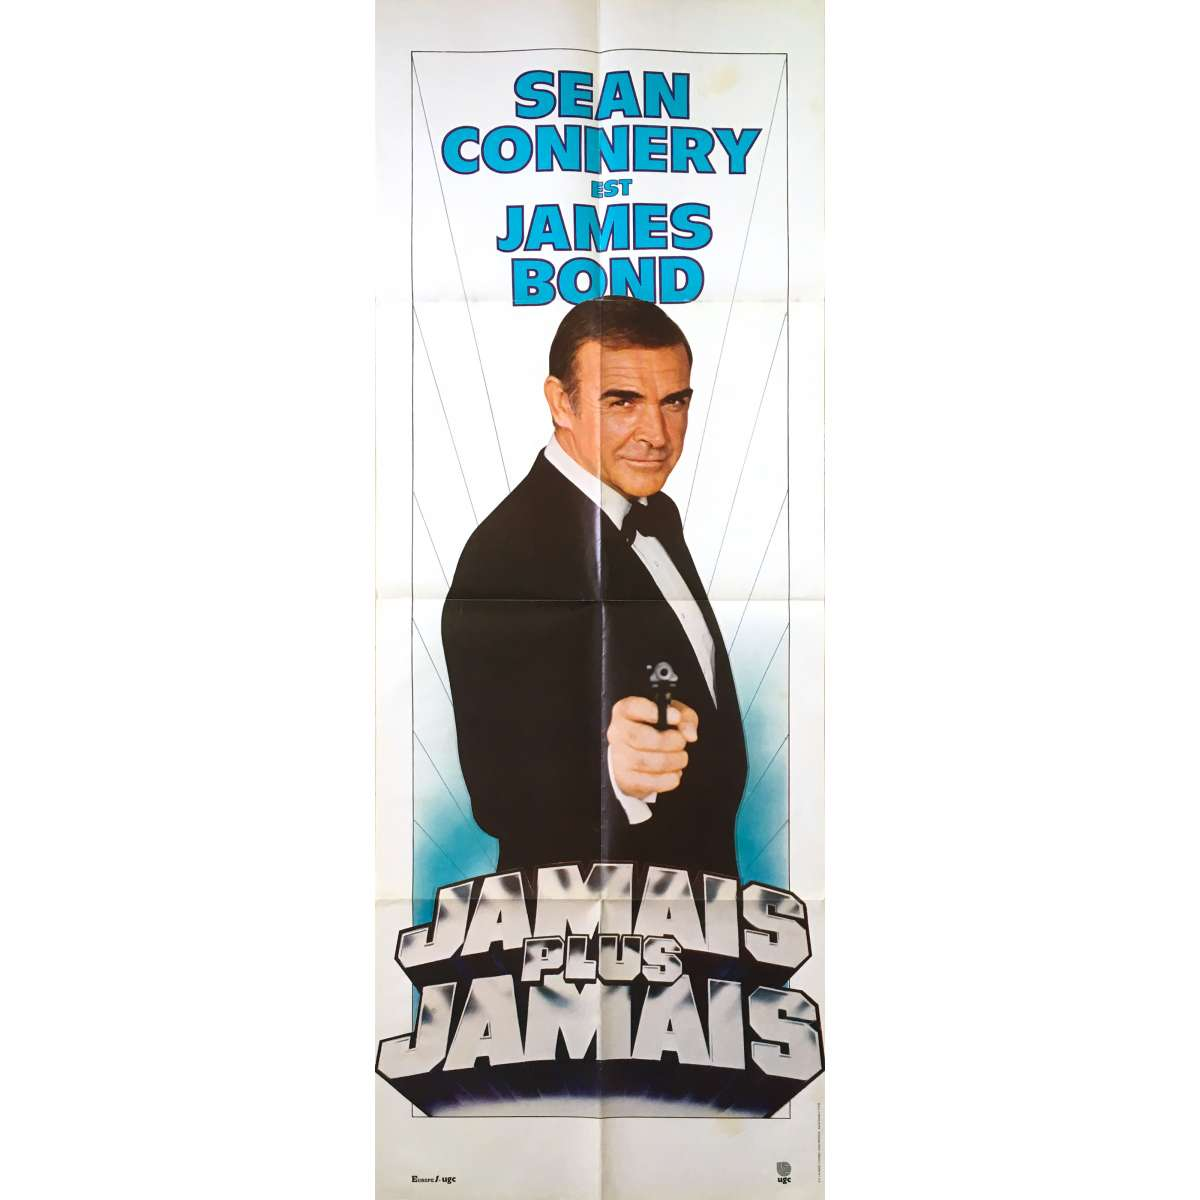 jamais-plus-jamais-affiche-de-film-60x160-cm-1983-sean-connery-james-bond.jpg